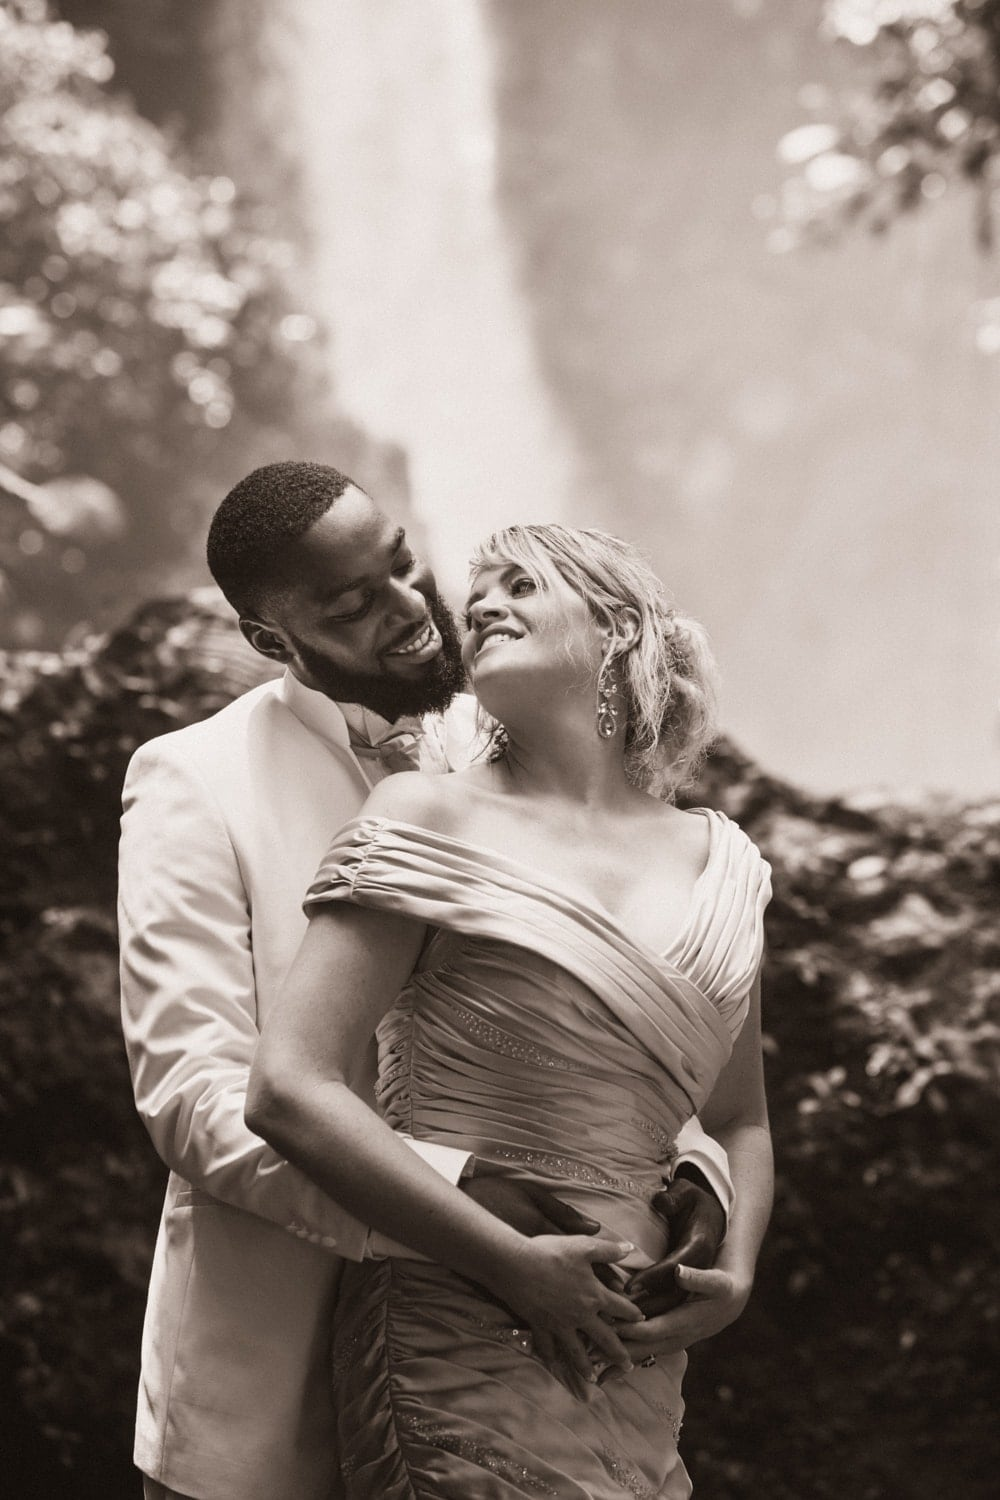 Janet-Thad-wedding-portrait-La-Paz-Waterfall-Gardens-Costa-Rica-3.jpg